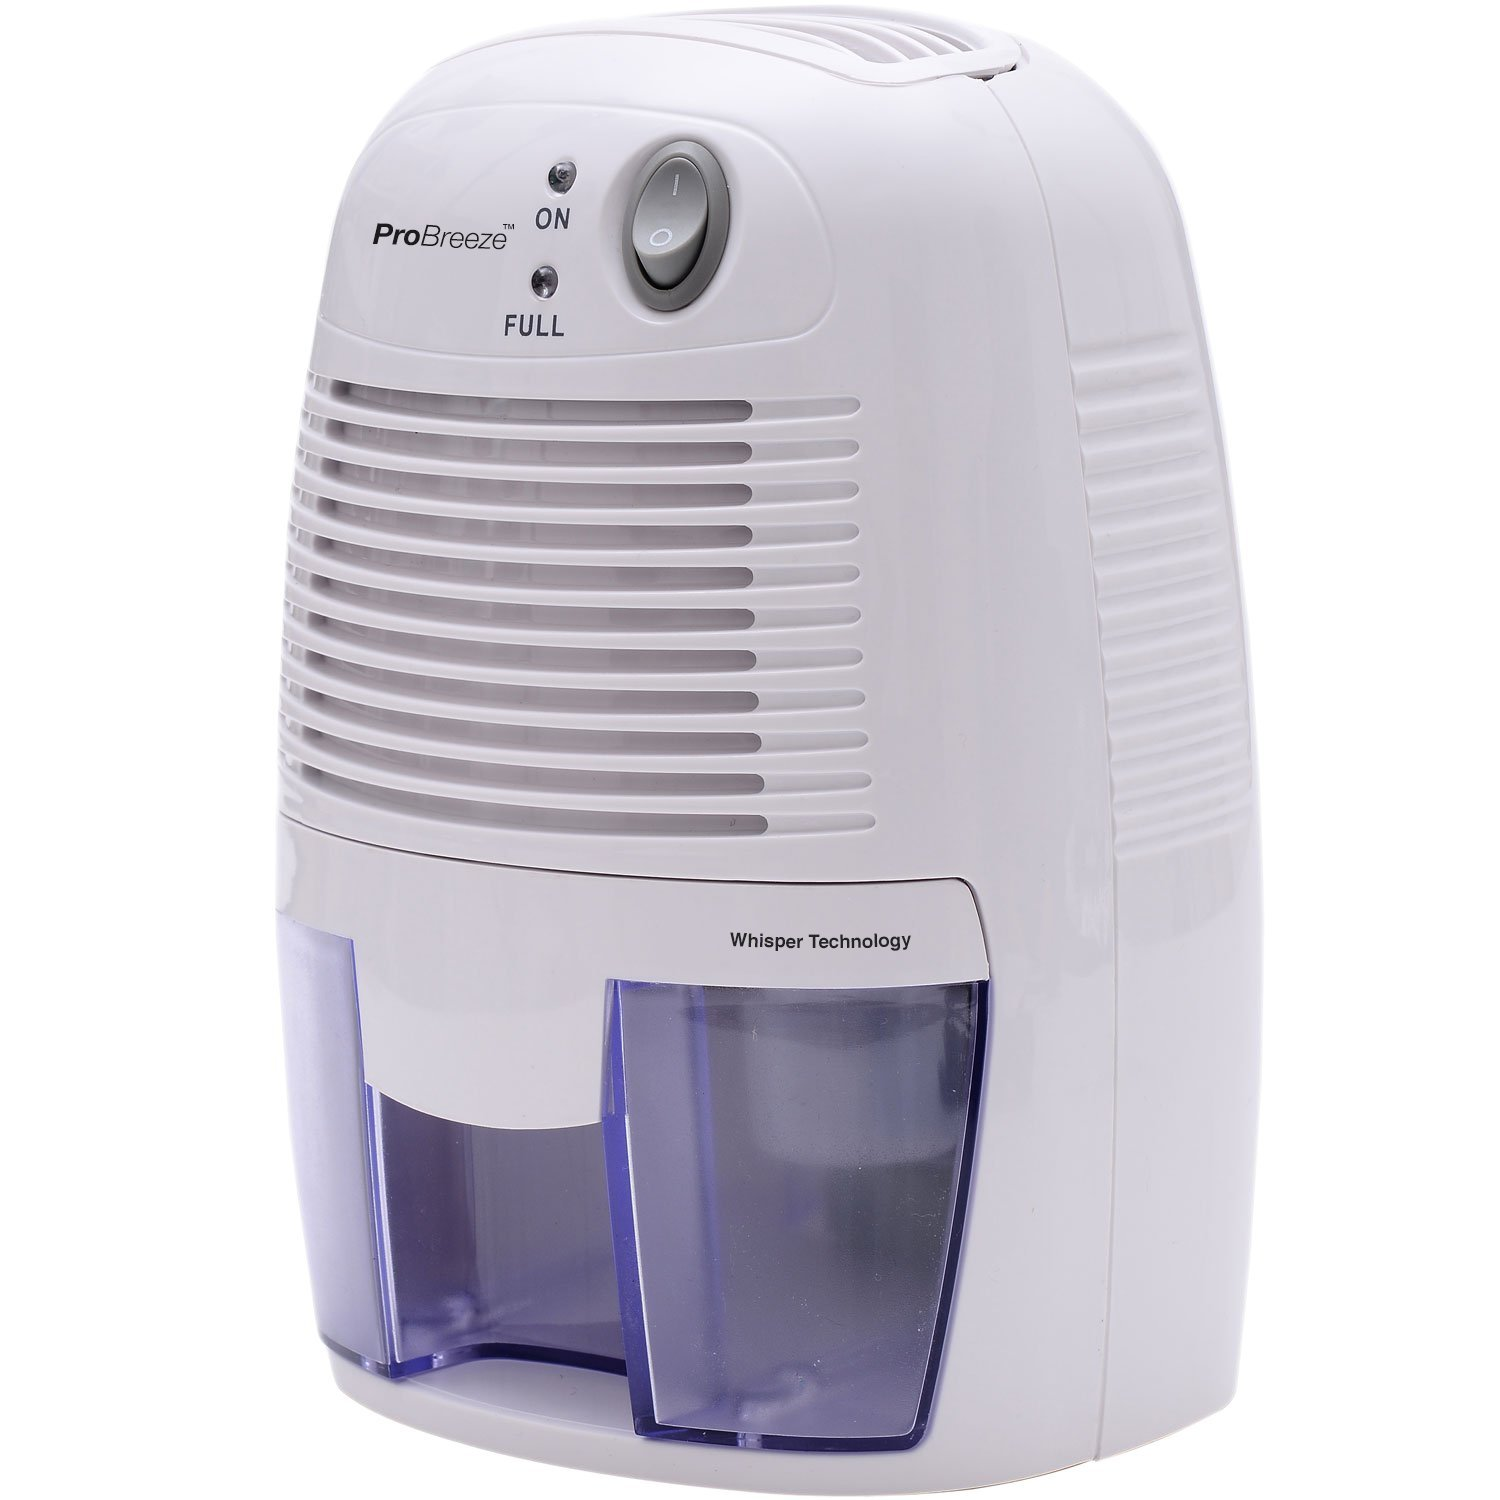 mini air dehumidifier for damp amazon co uk ideal for removing damp #423E8D